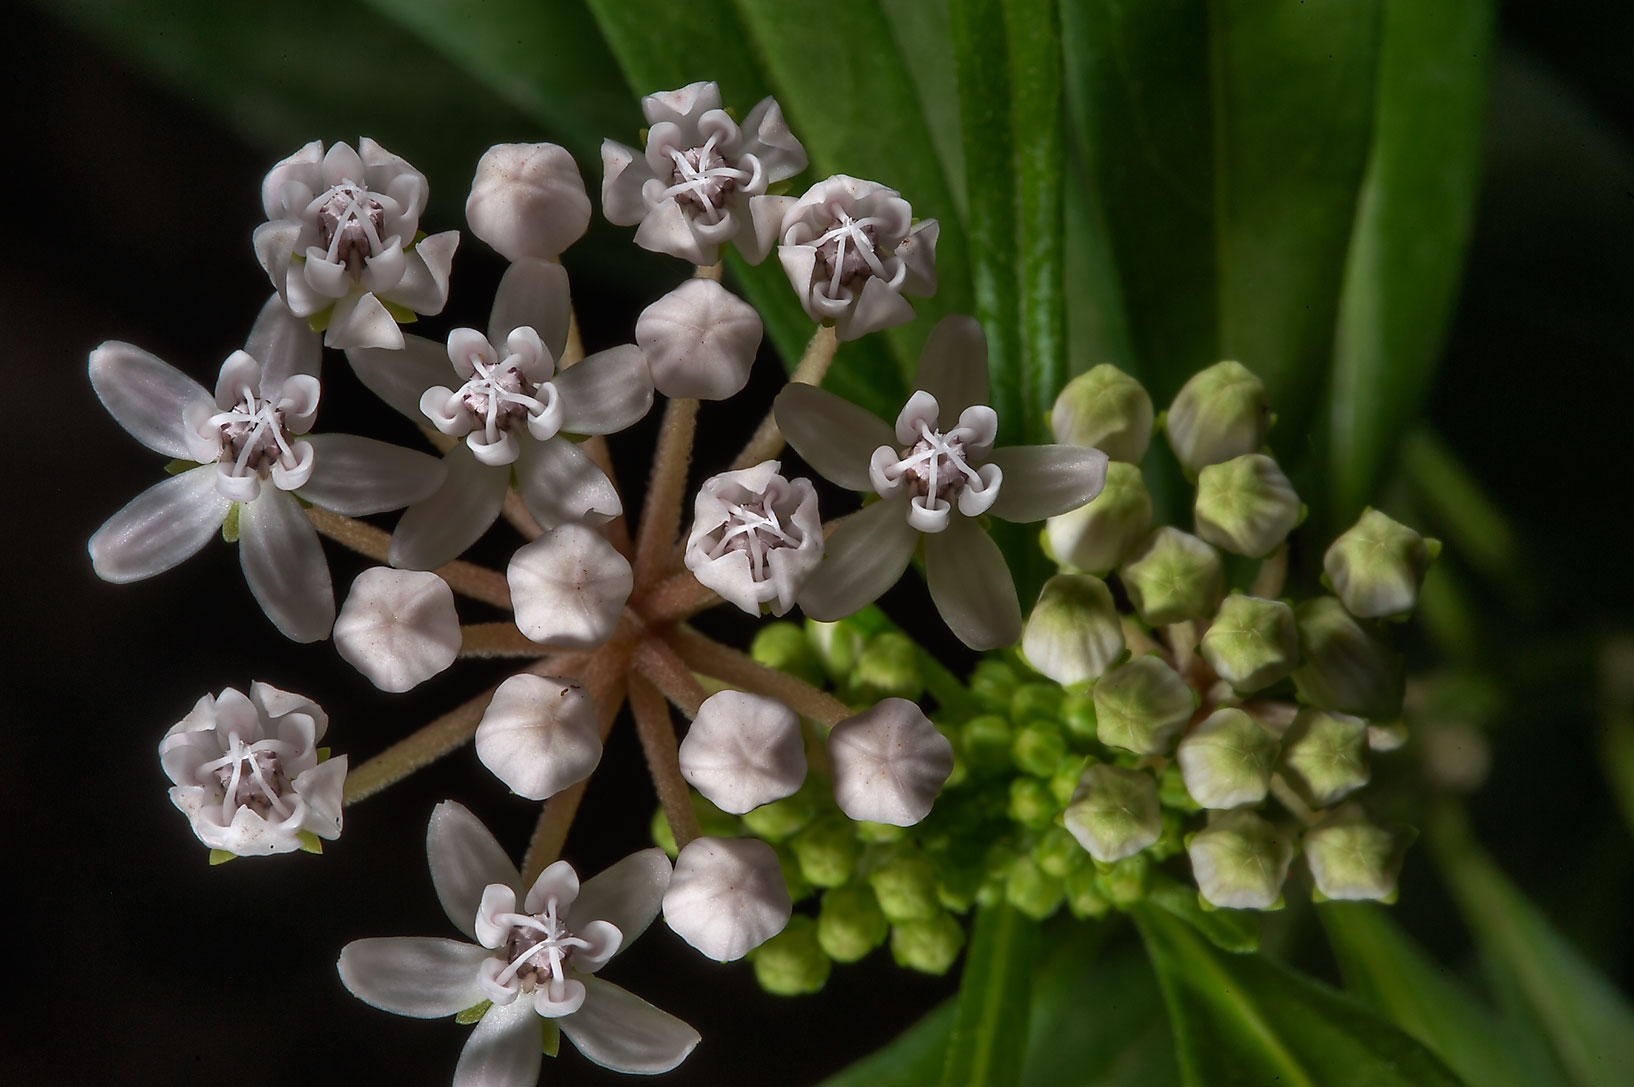 Flower buds of Shore milkweed (Asclepias perennis...Gardens. Humble (Houston area), Texas